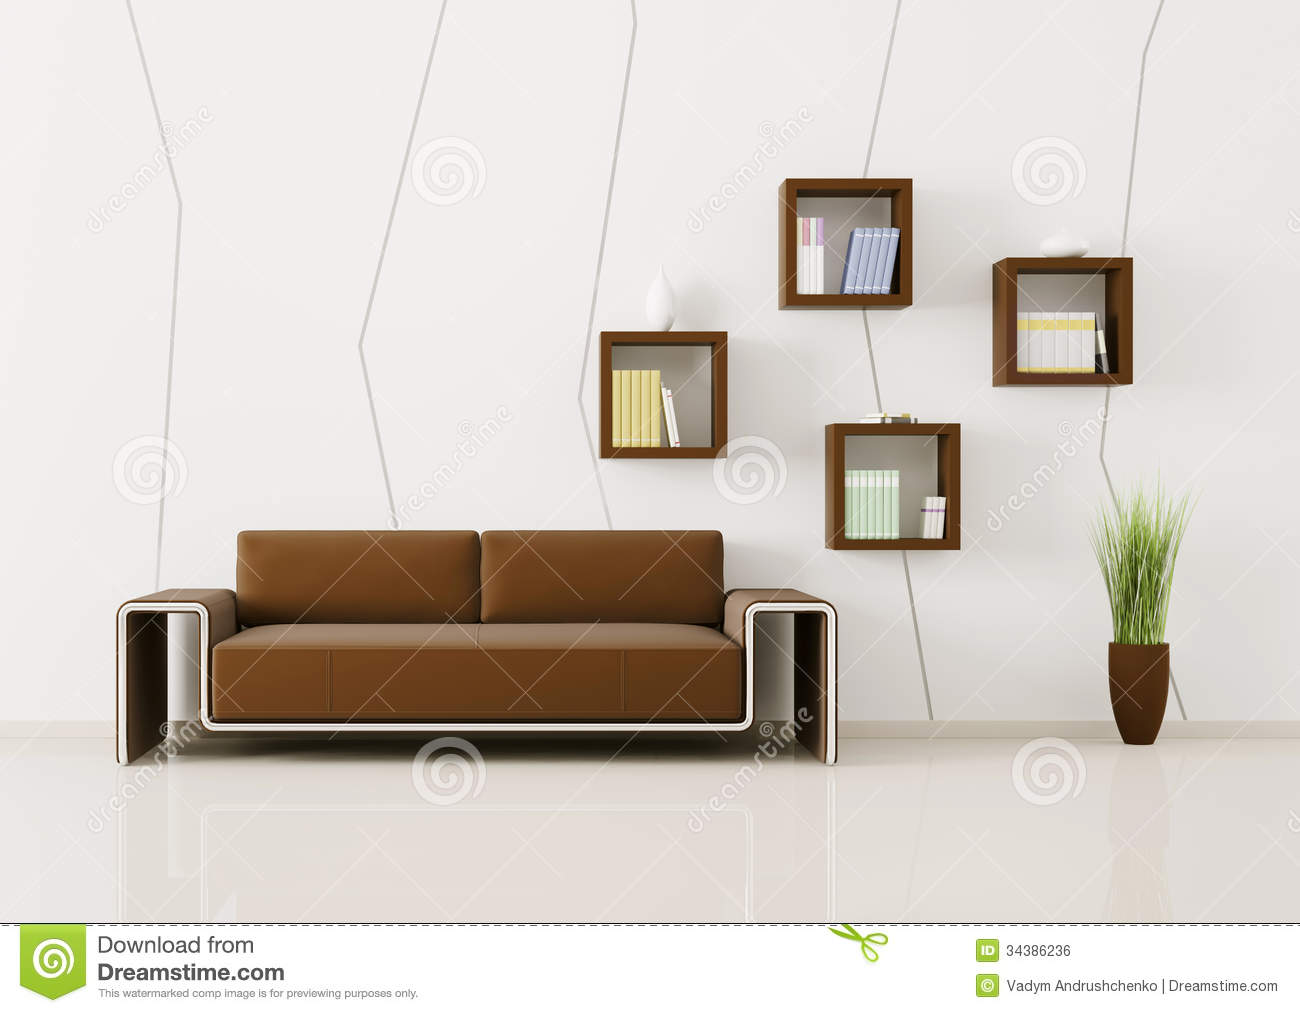 Interior of living room 3d render royalty free stock image image 34386236 - Living room photos ...